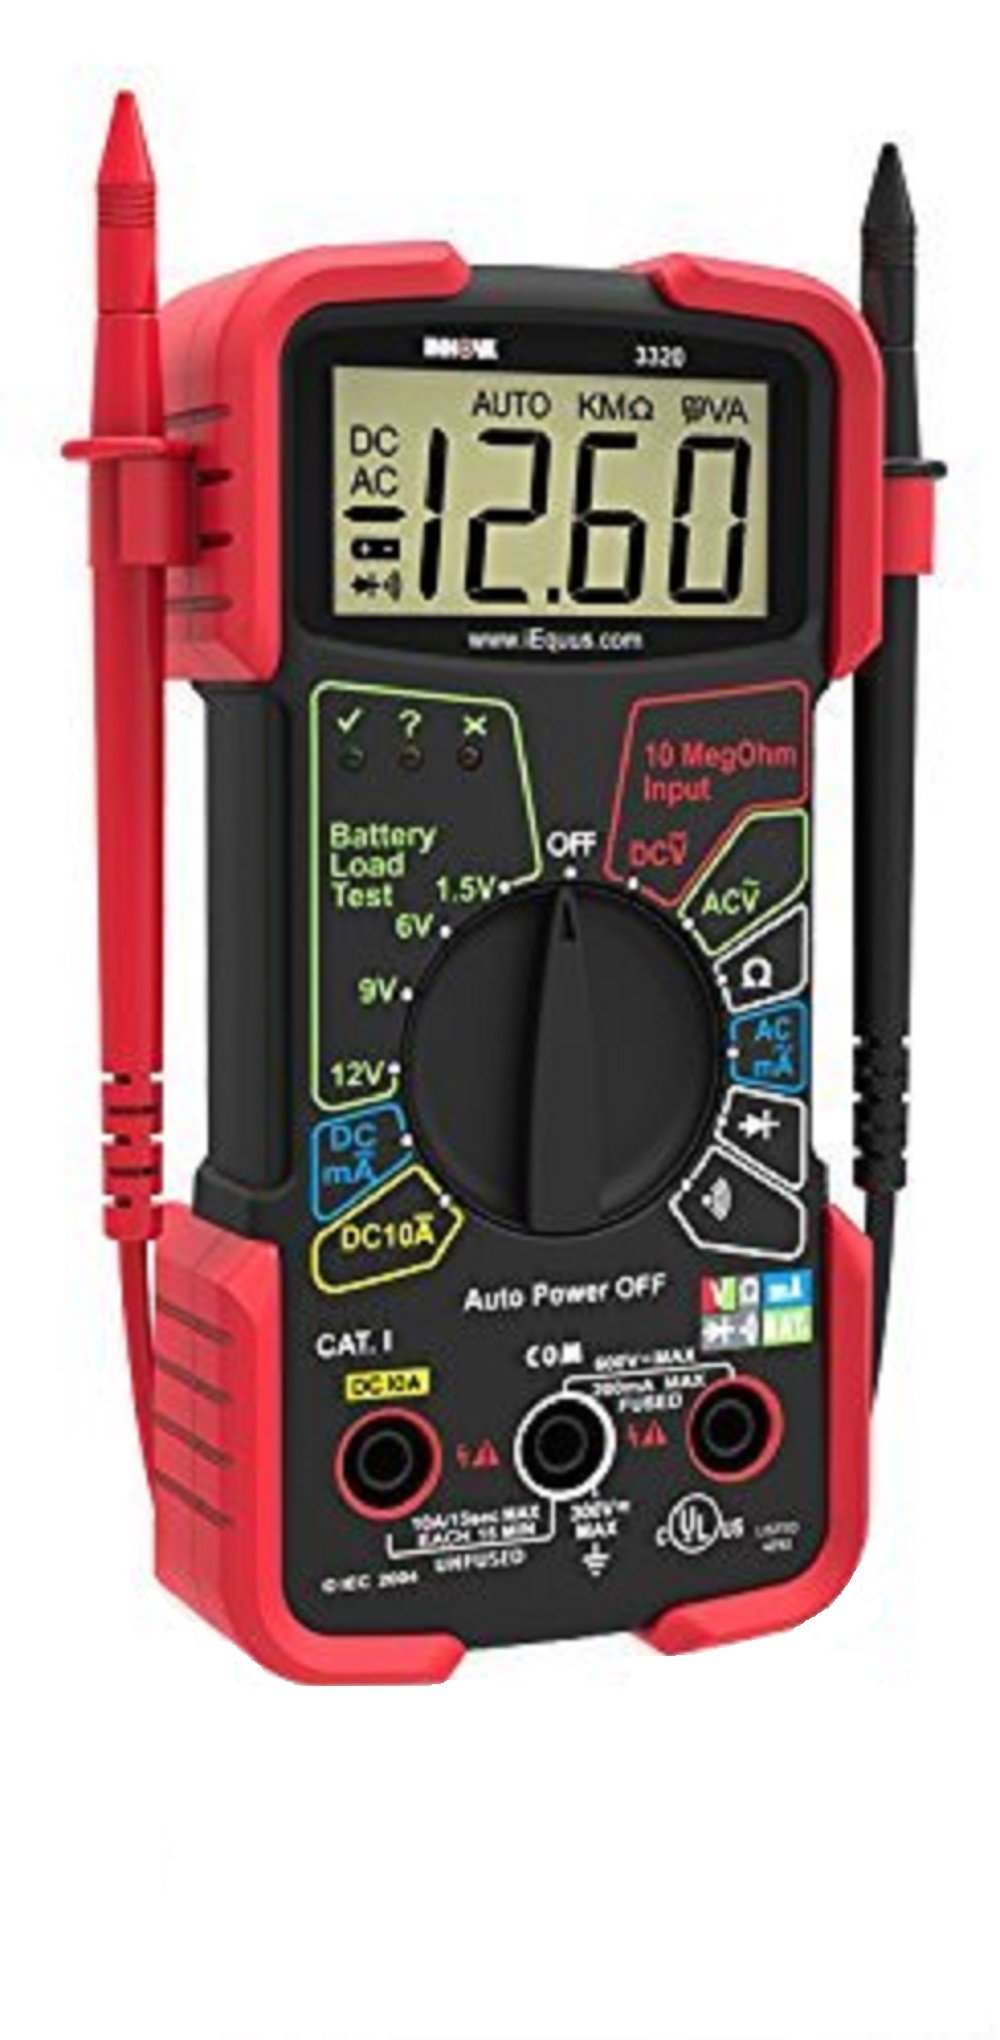 INNOVA 3320 Auto-Ranging Digital Multimeter by Innova